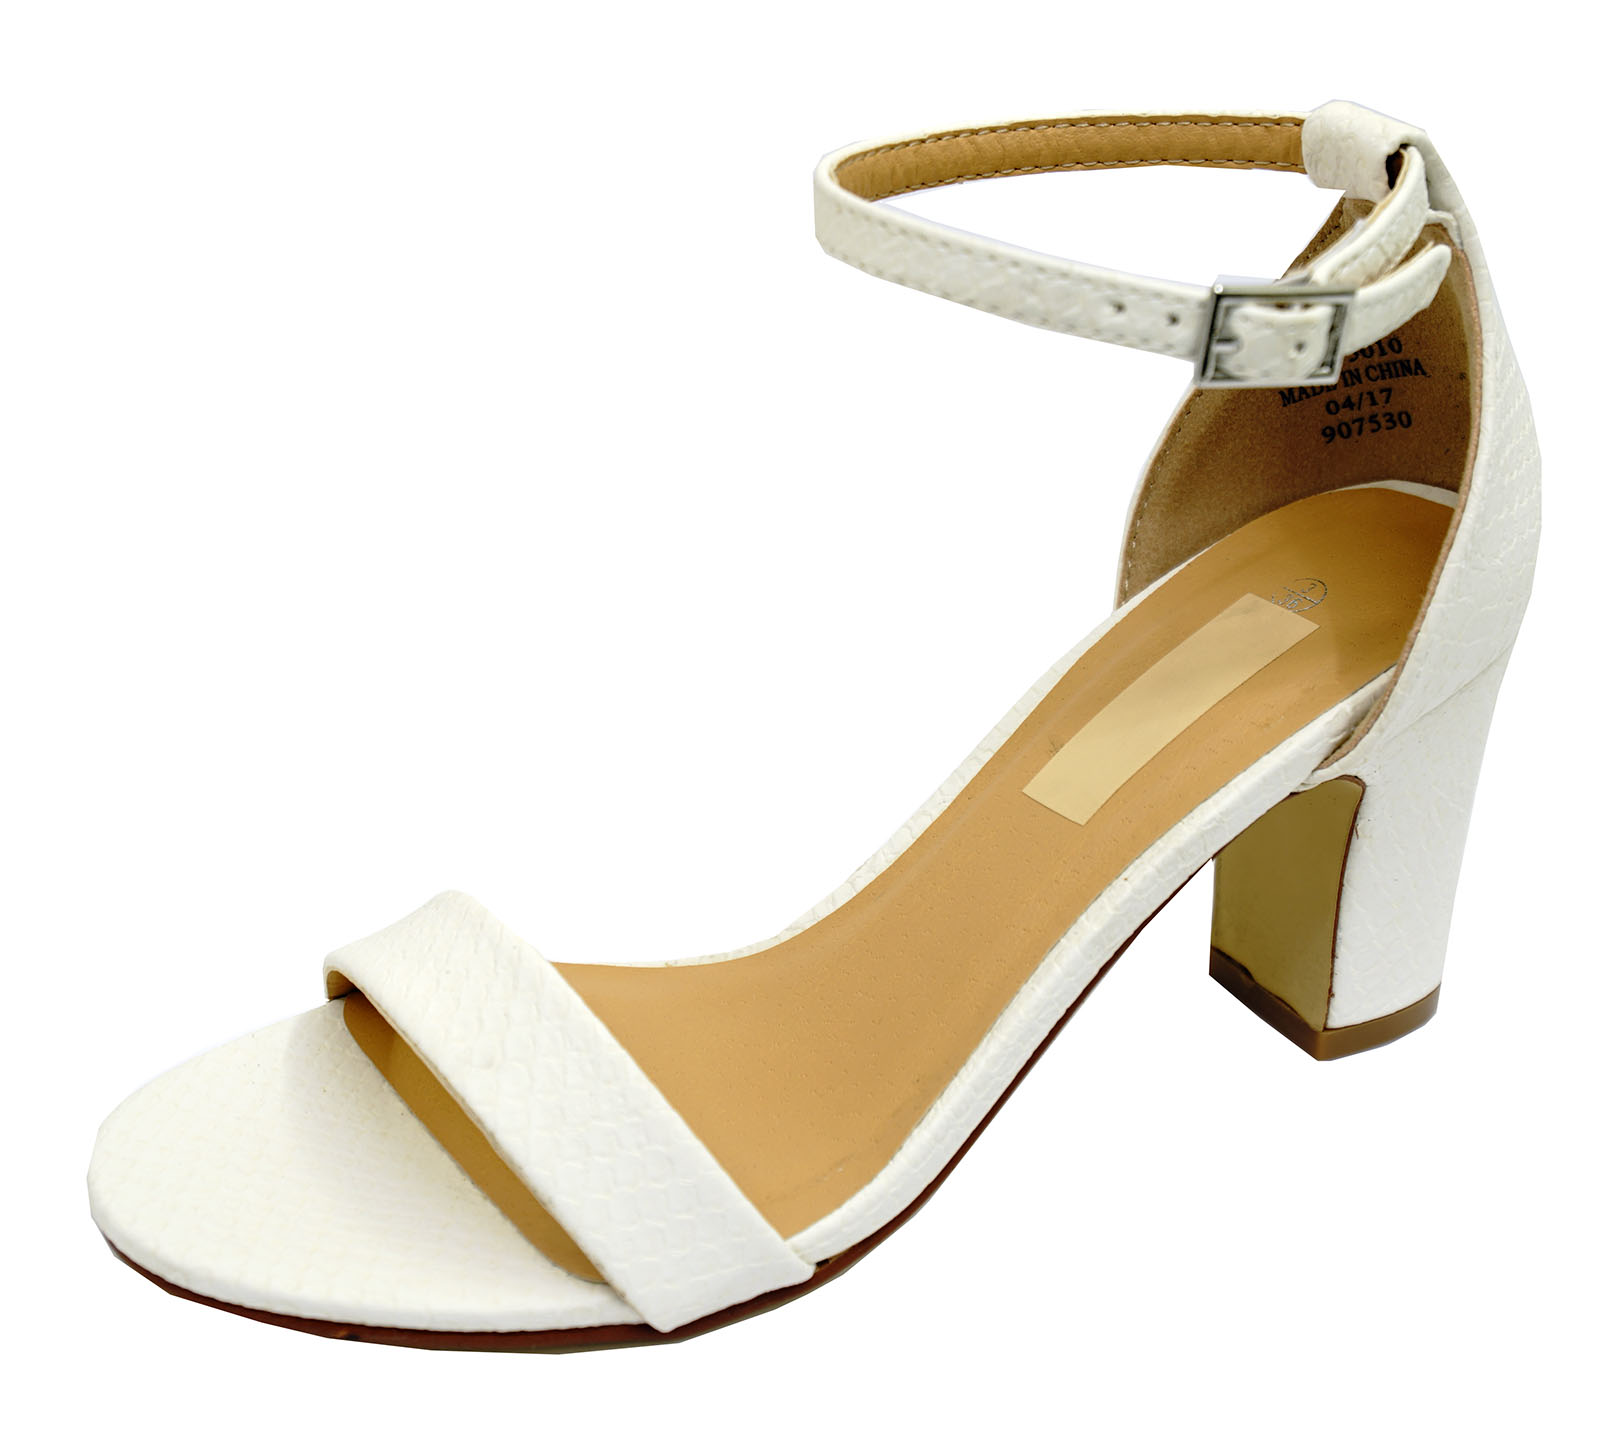 LADIES-WHITE-ANKLE-STRAP-BLOCK-HEEL-PEEPTOE-SANDALS-HOLIDAY-COMFY-SHOES-UK-3-8 thumbnail 10